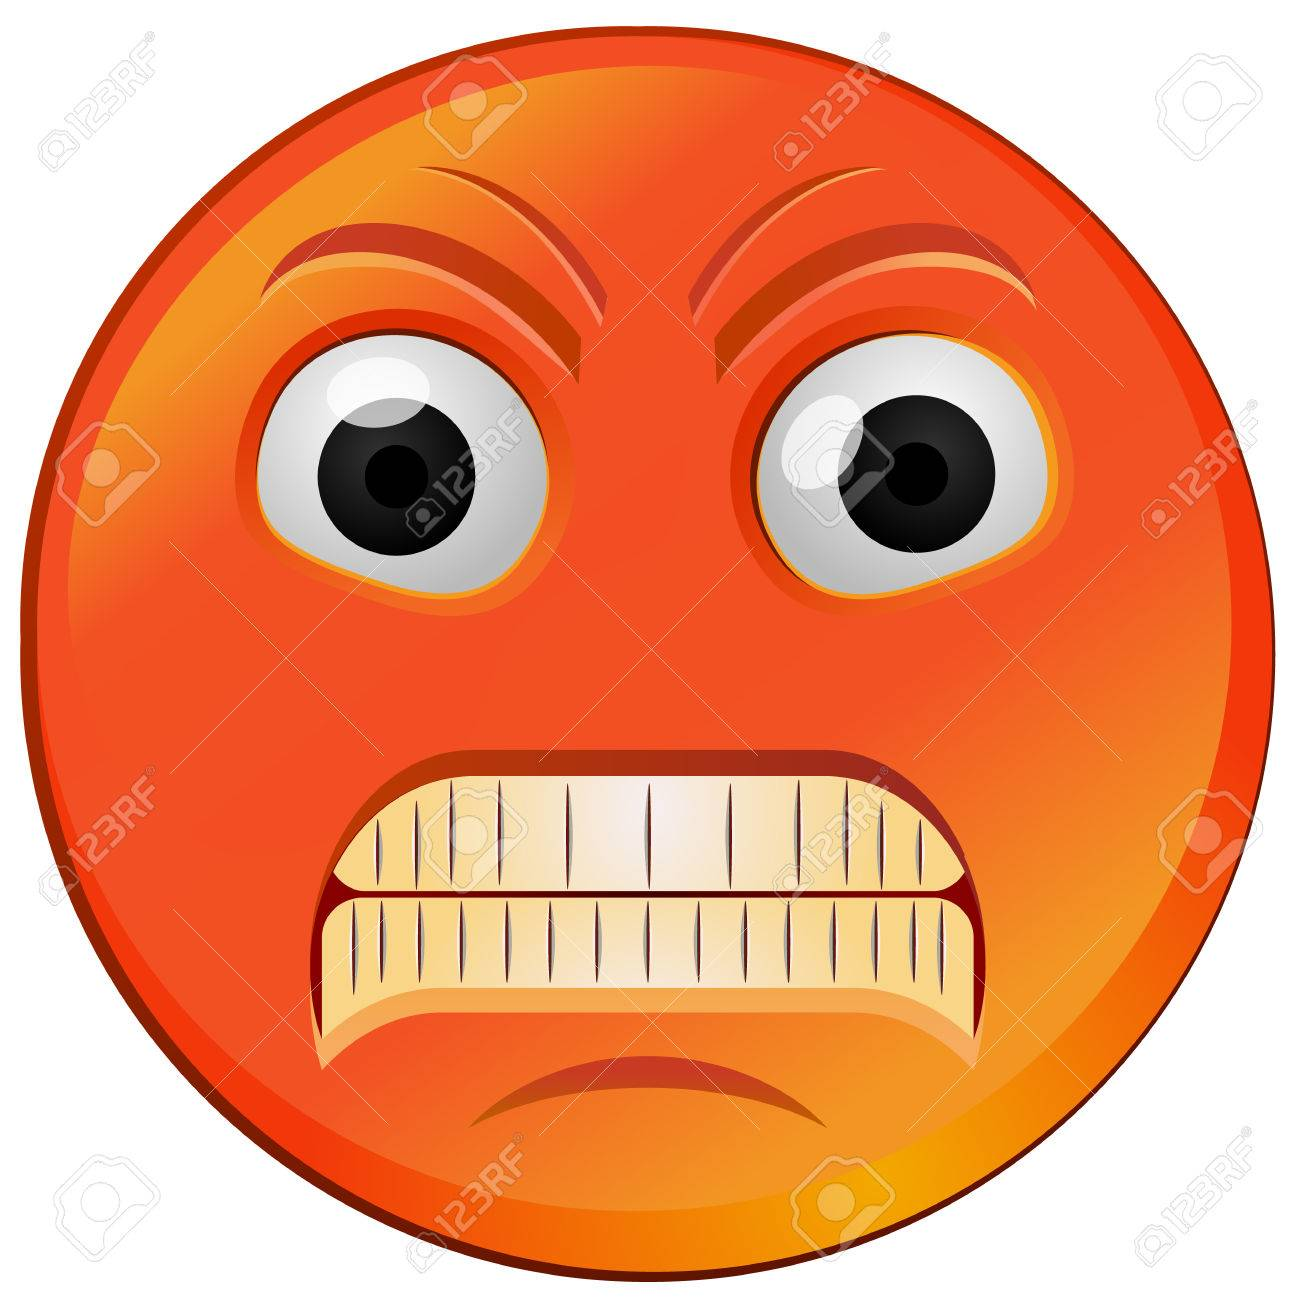 red fuming or raging angry emoji vector icon royalty free cliparts